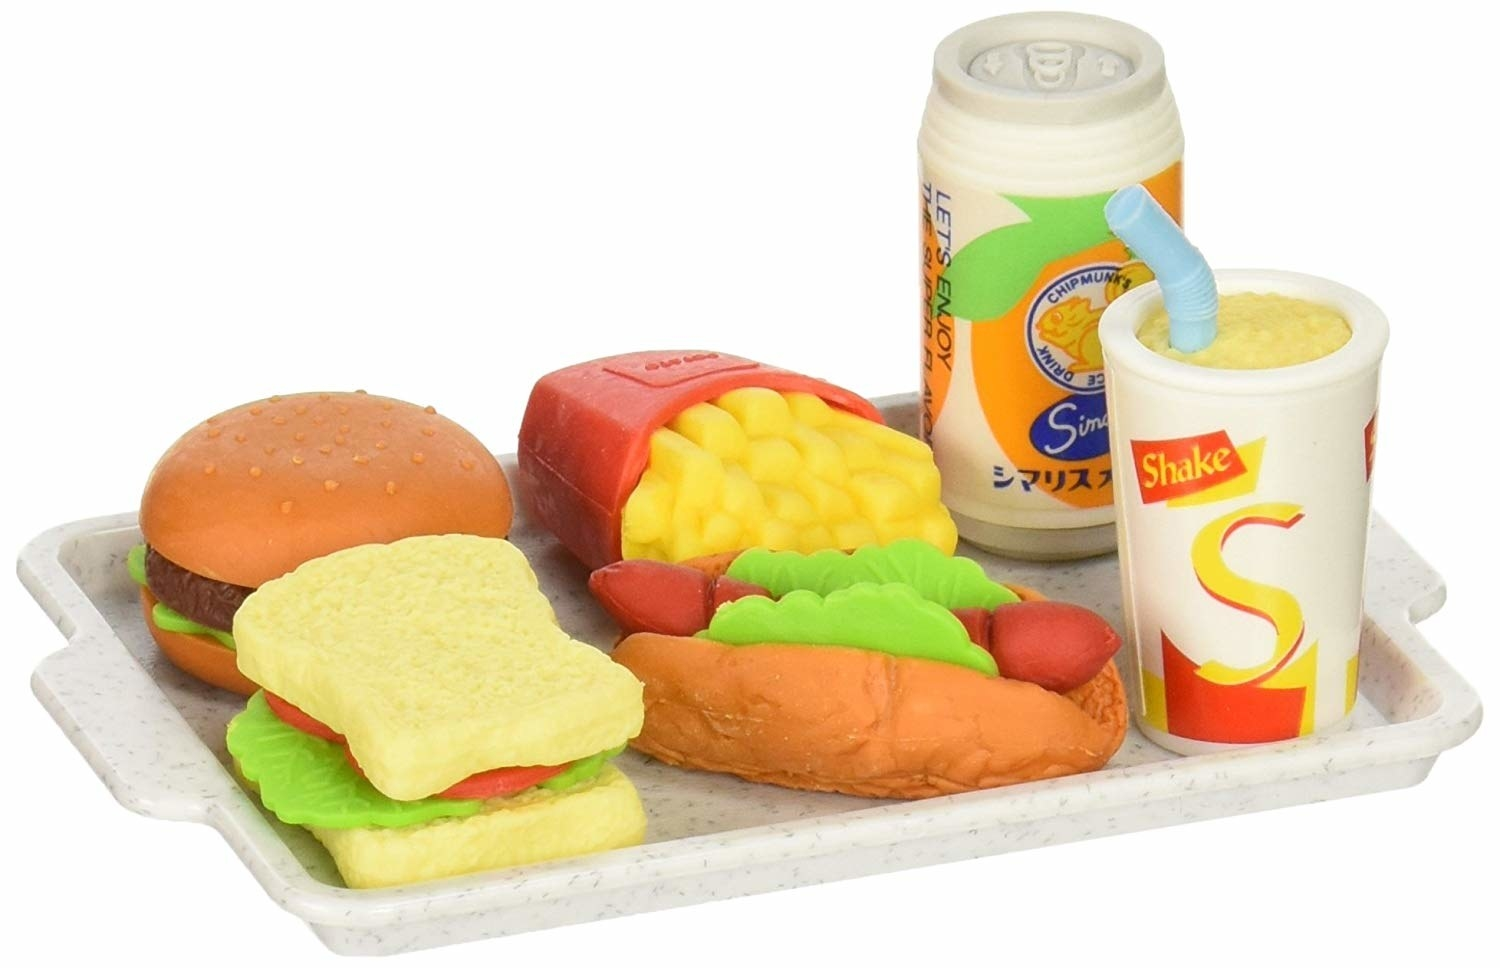 eraser that look like a fast food order on a tray